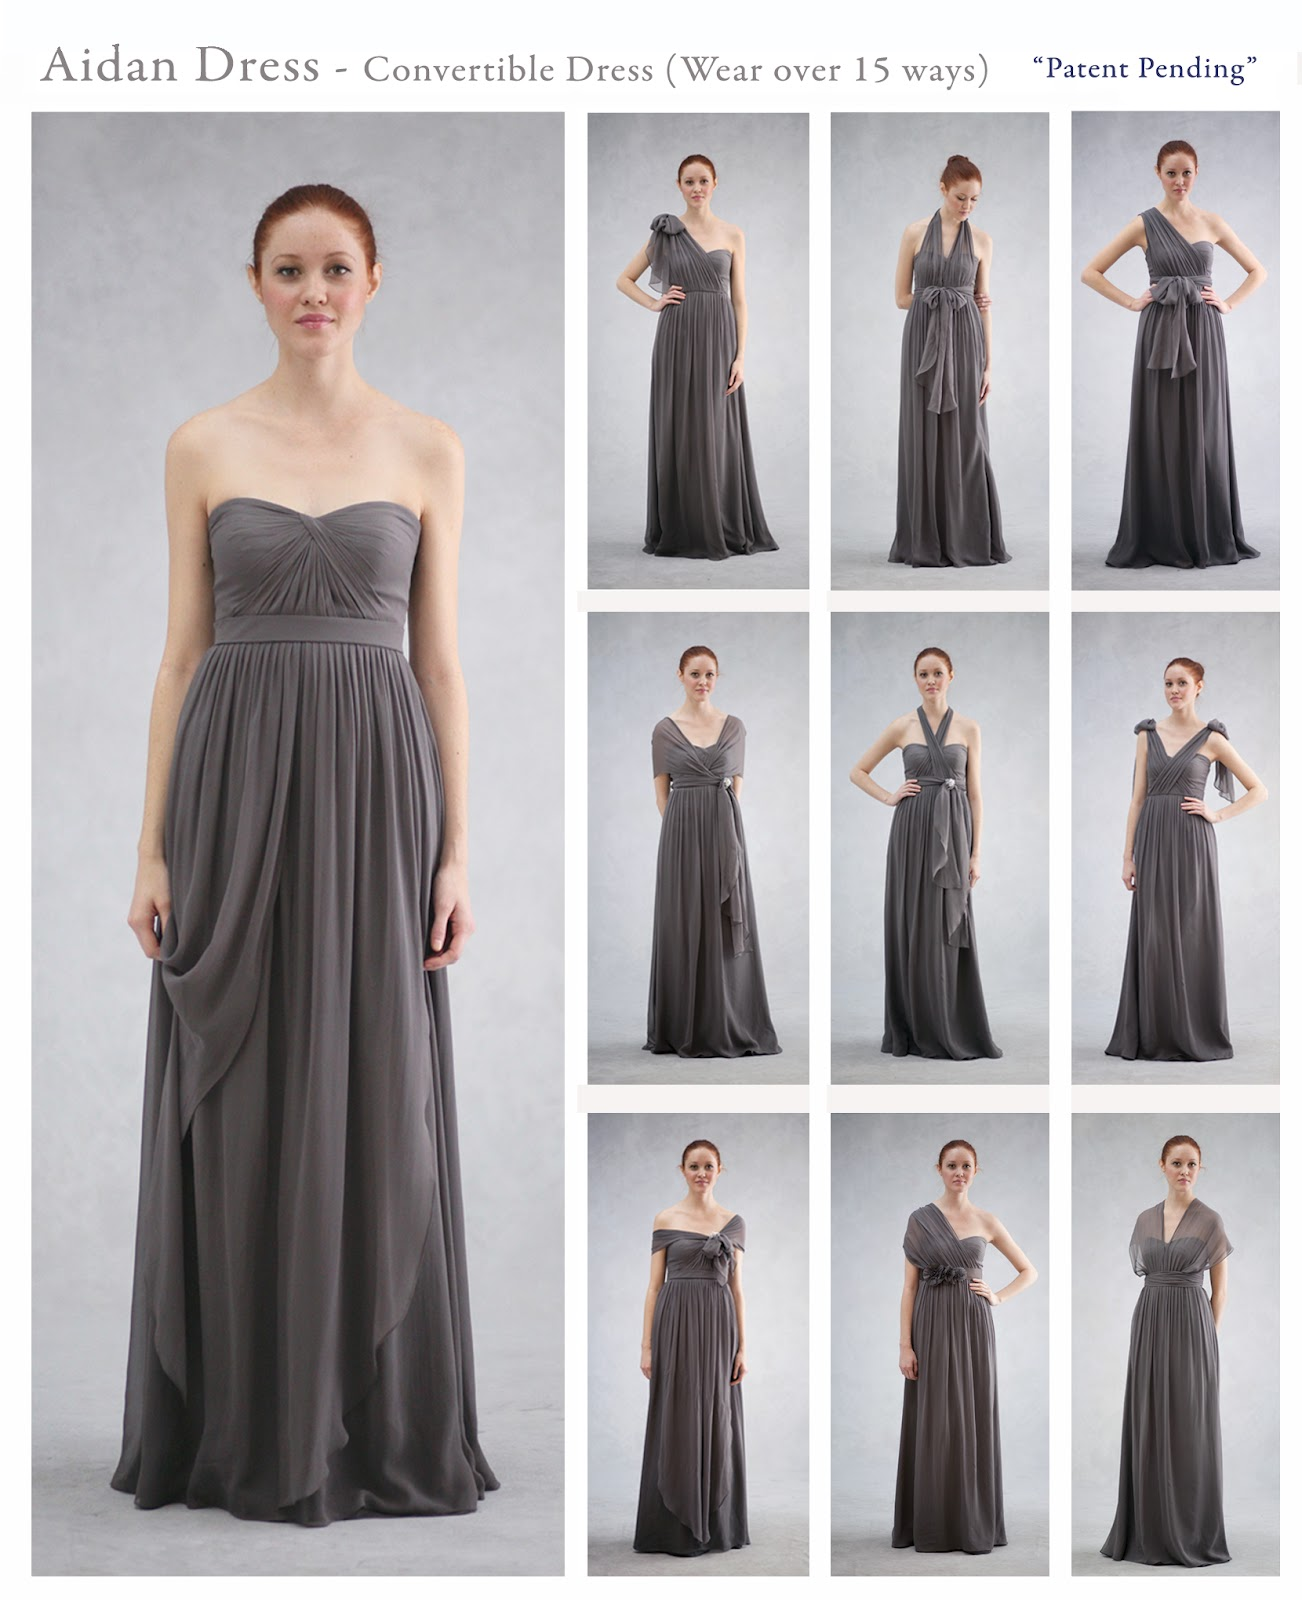 Jenny yoo convertible bridesmaid dresses choice image braidsmaid our interview with jenny yoo bella bridesmaids aidan dress ombrellifo choice image ombrellifo Choice Image